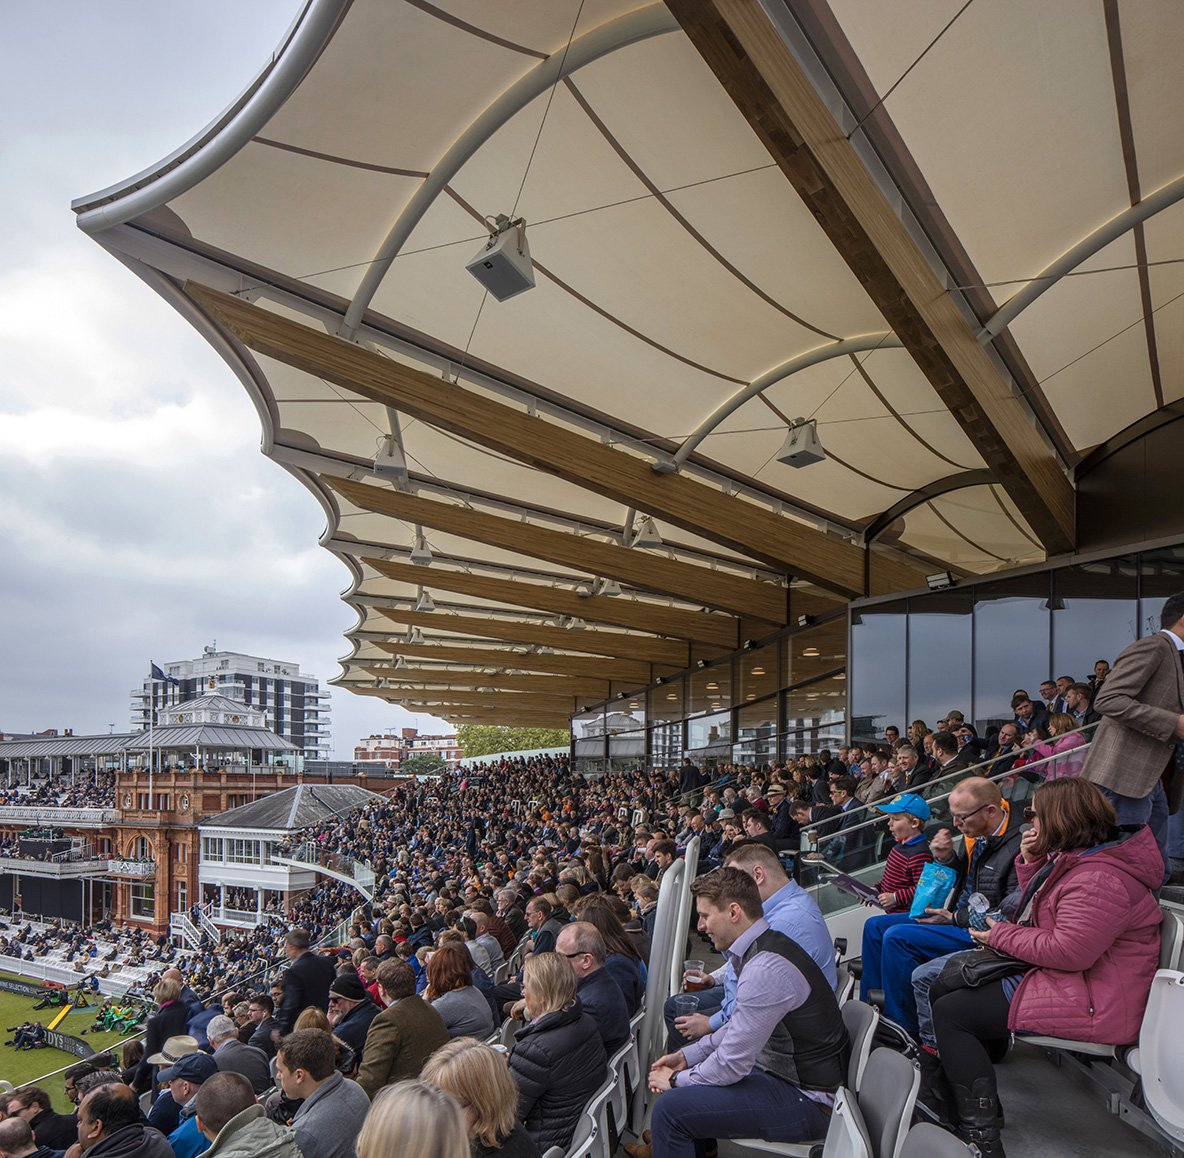 Warner Stand presso il Lord's Cricket Ground